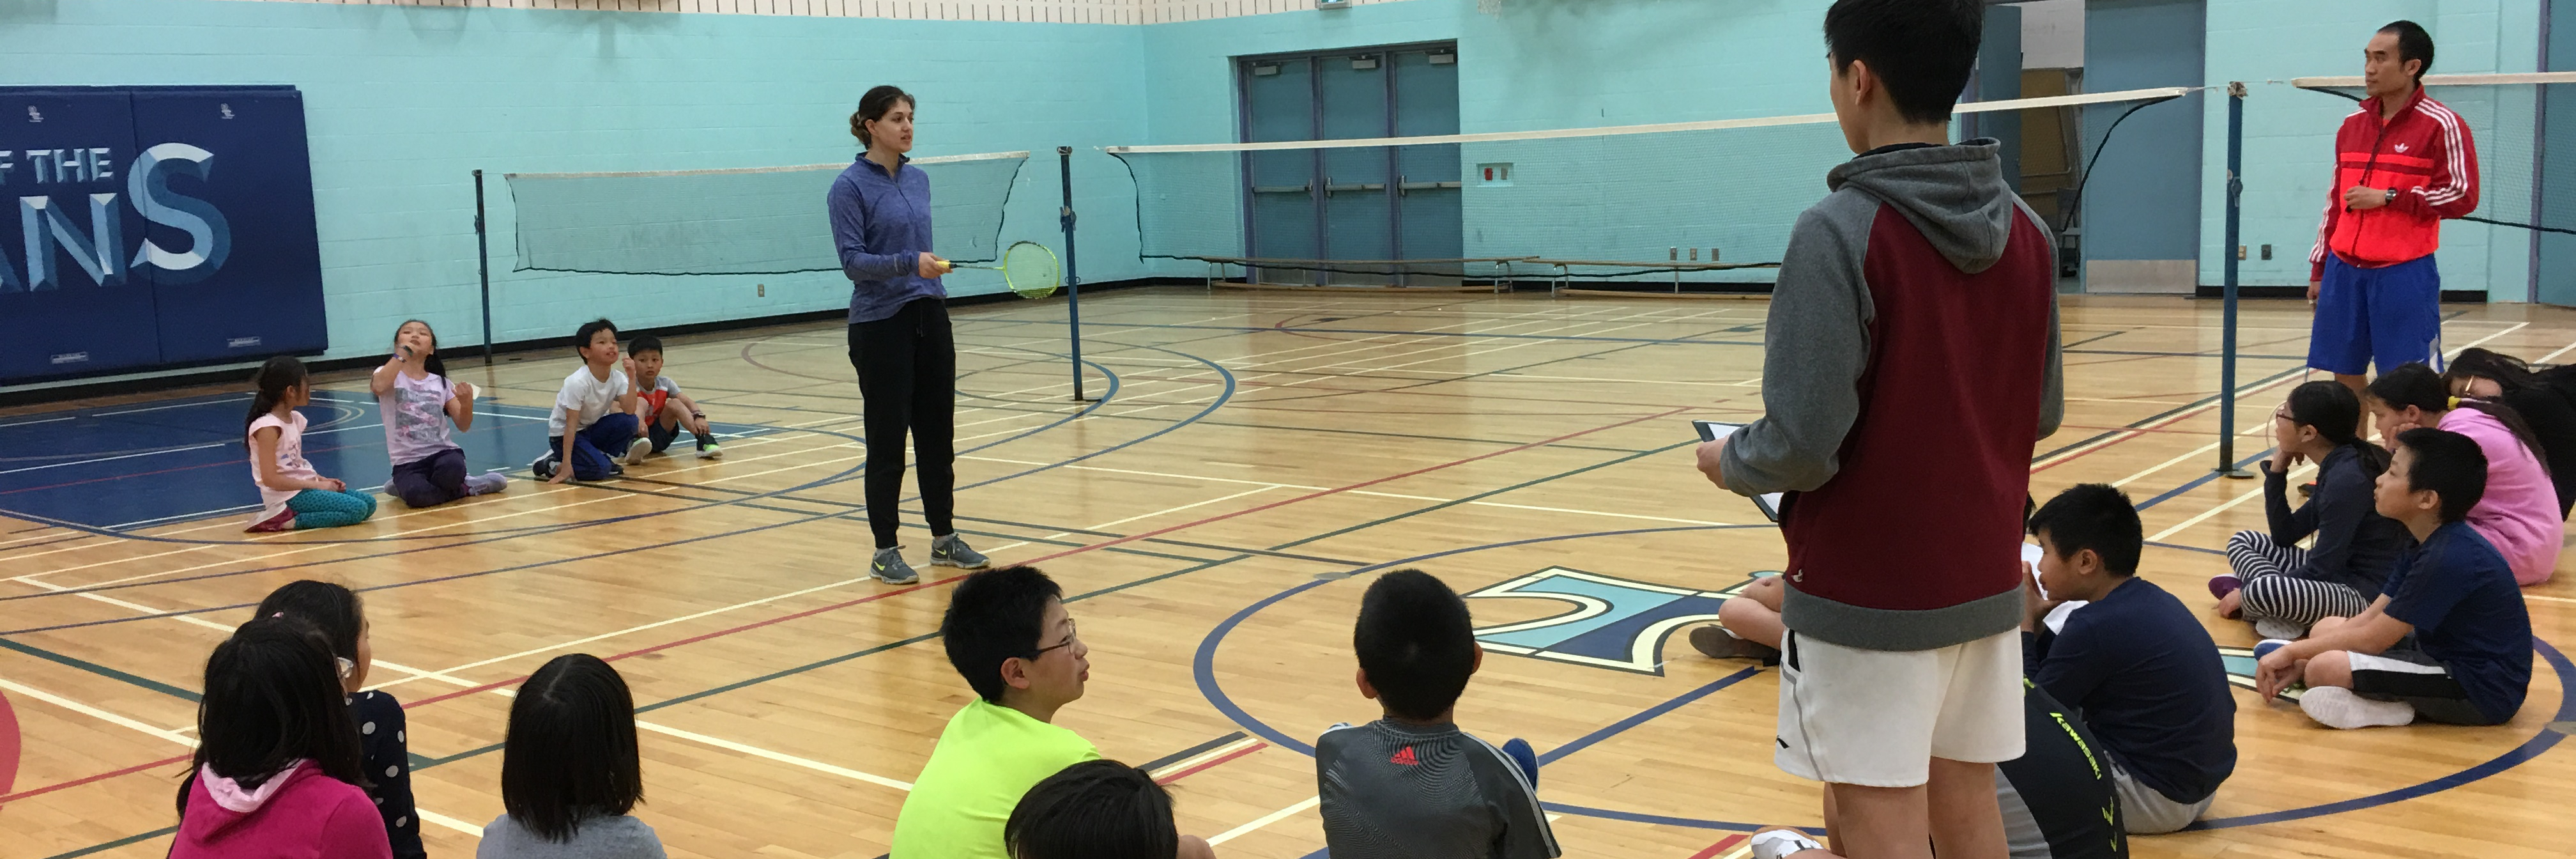 Barrhaven Star Badminton Club